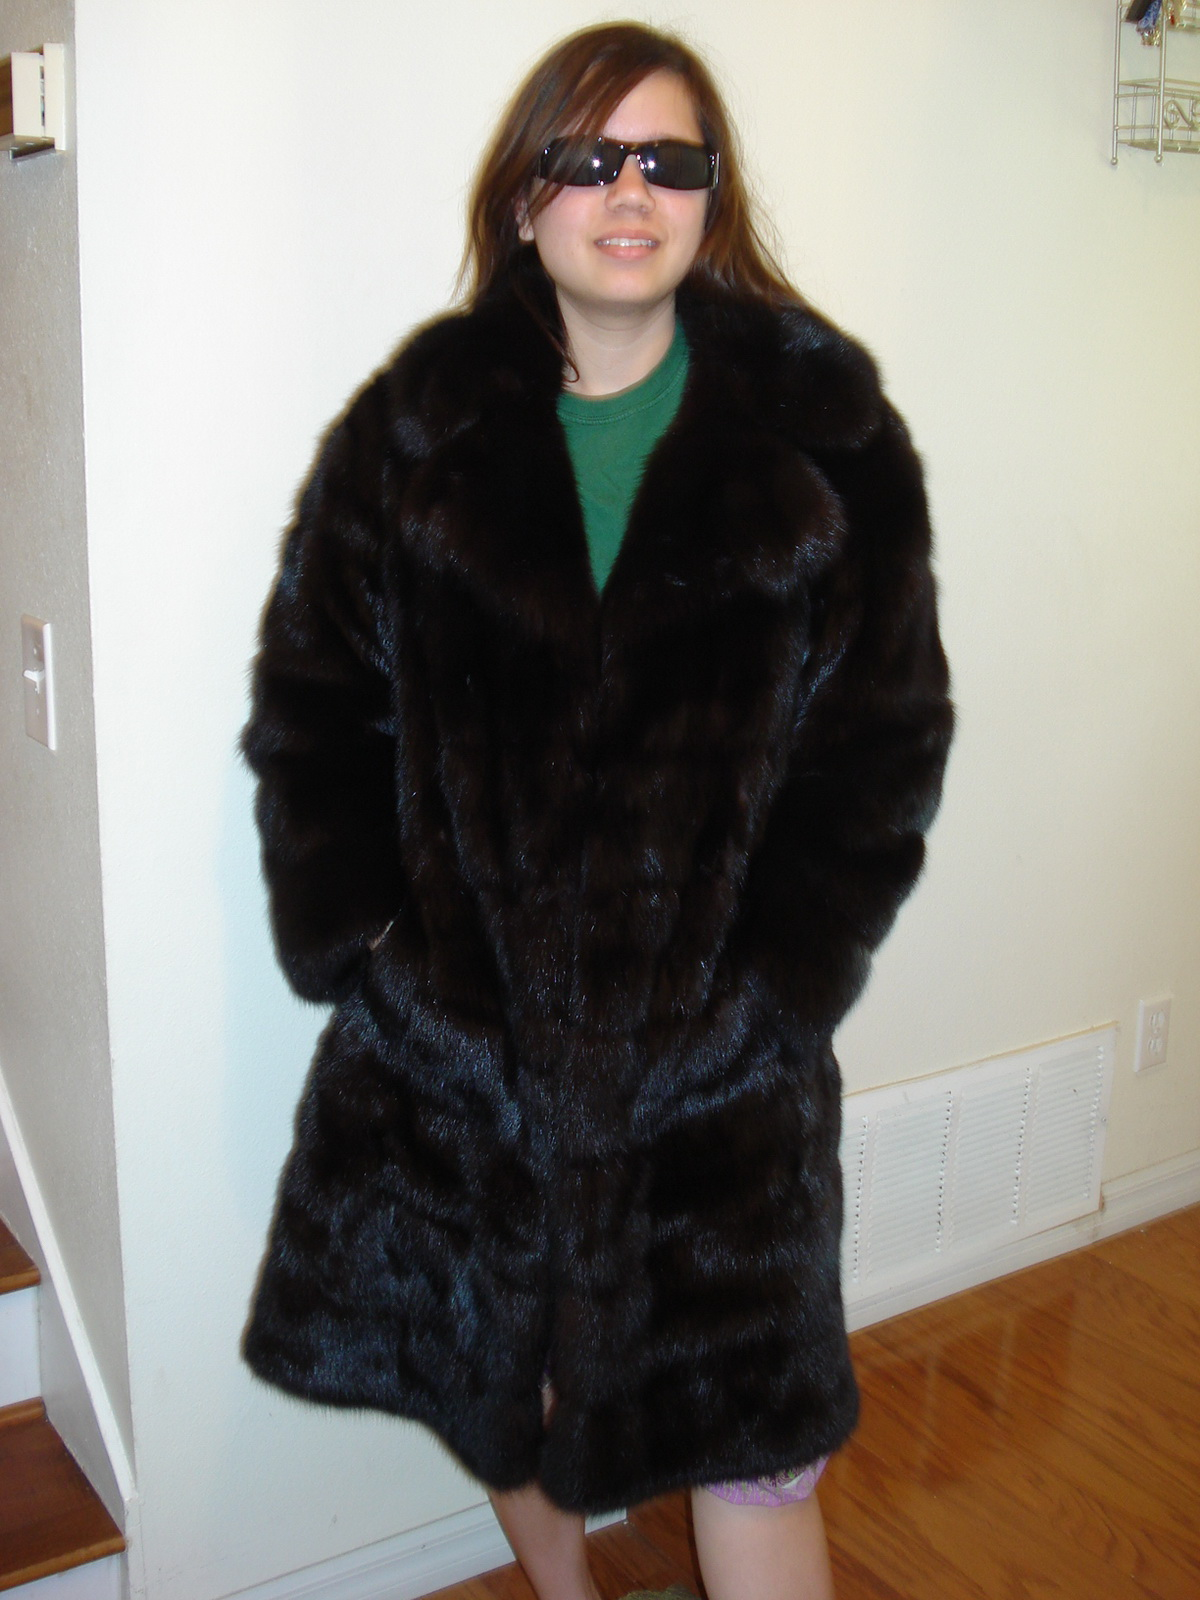 cute oriental girls in fur coats